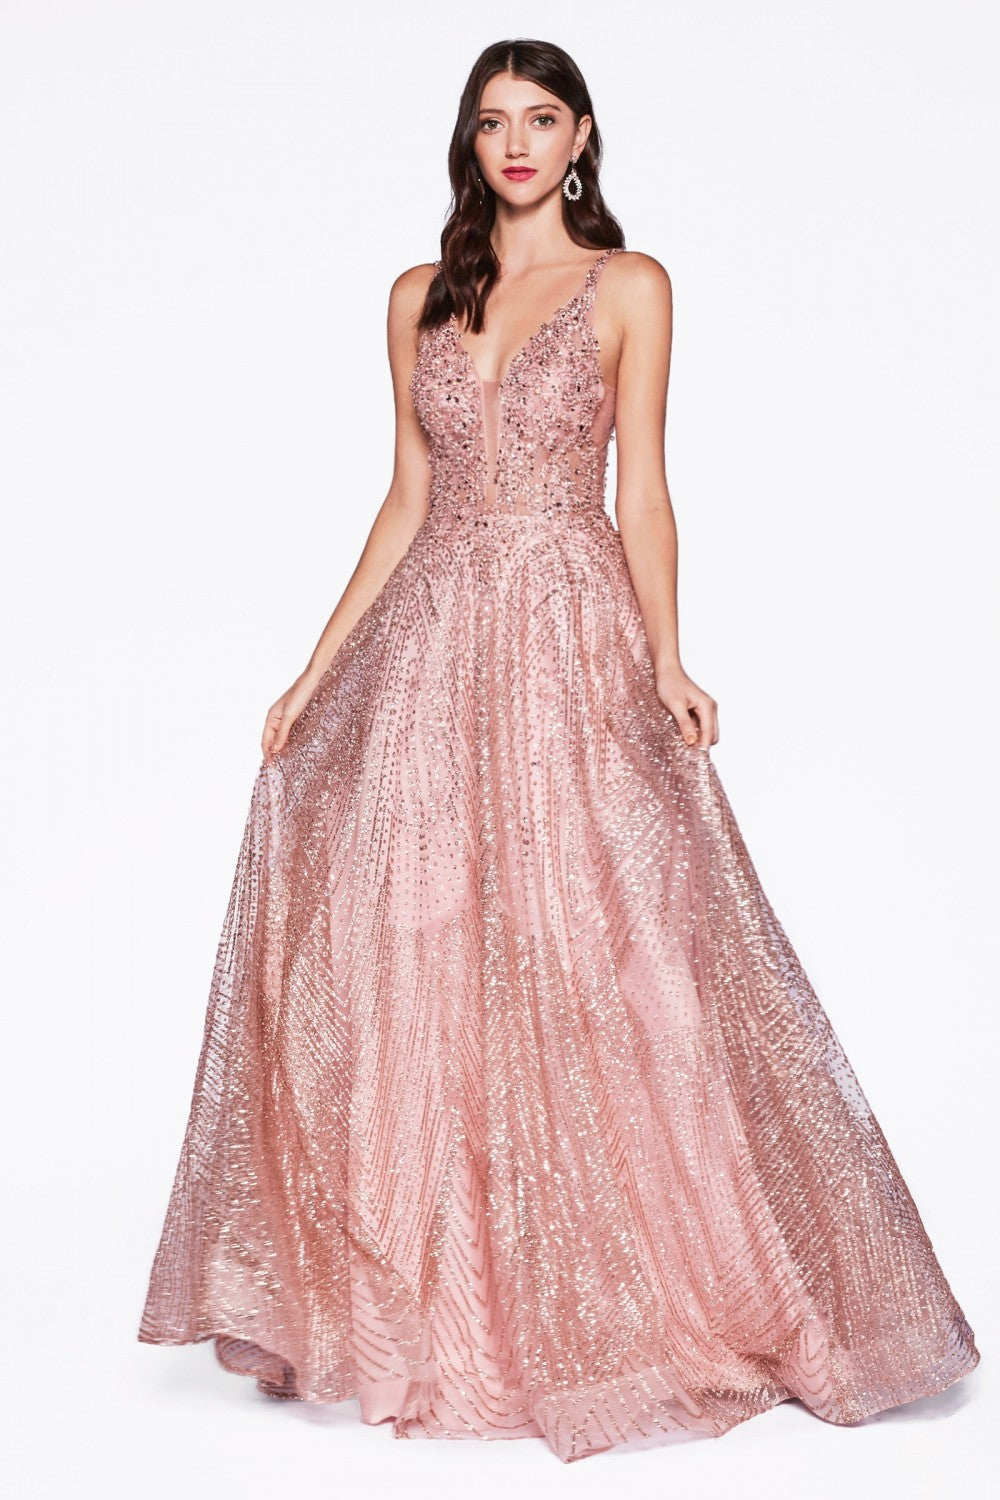 Cinderella Divine Chart I CD AM258 - A-Line Ballgown with Sheer Embellished Lace Bodice & Layered Glitter Tulle Skirt - Diggz Prom